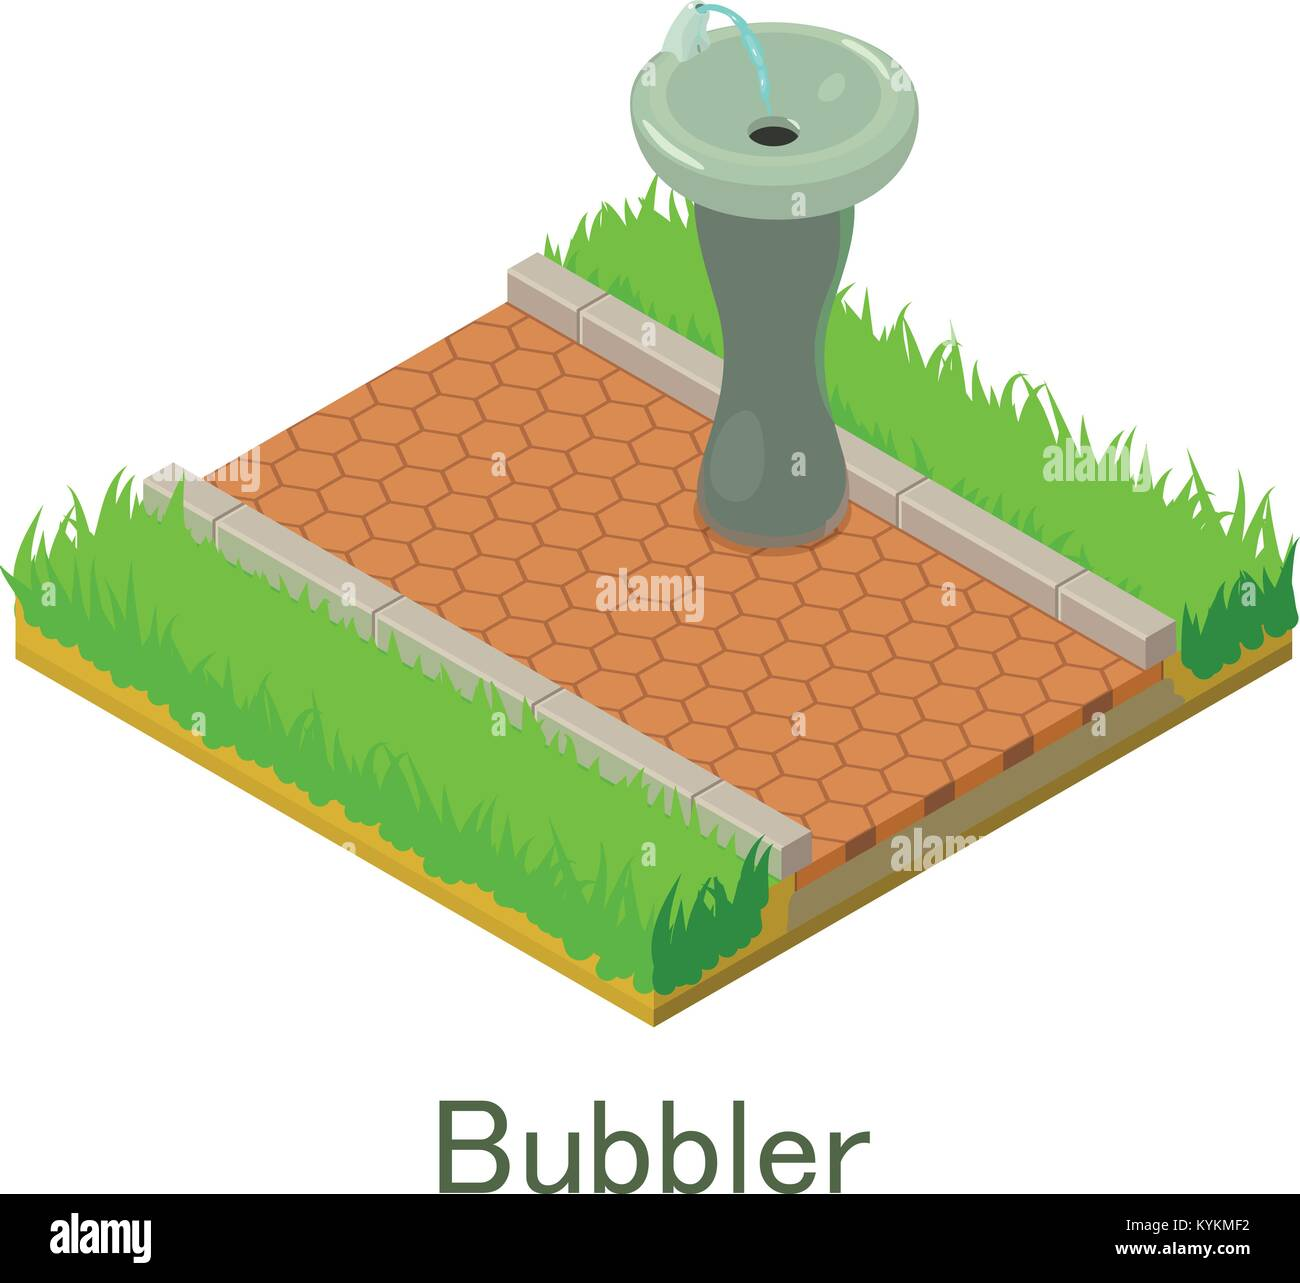 hight resolution of search results for garden bubbler stock vector images